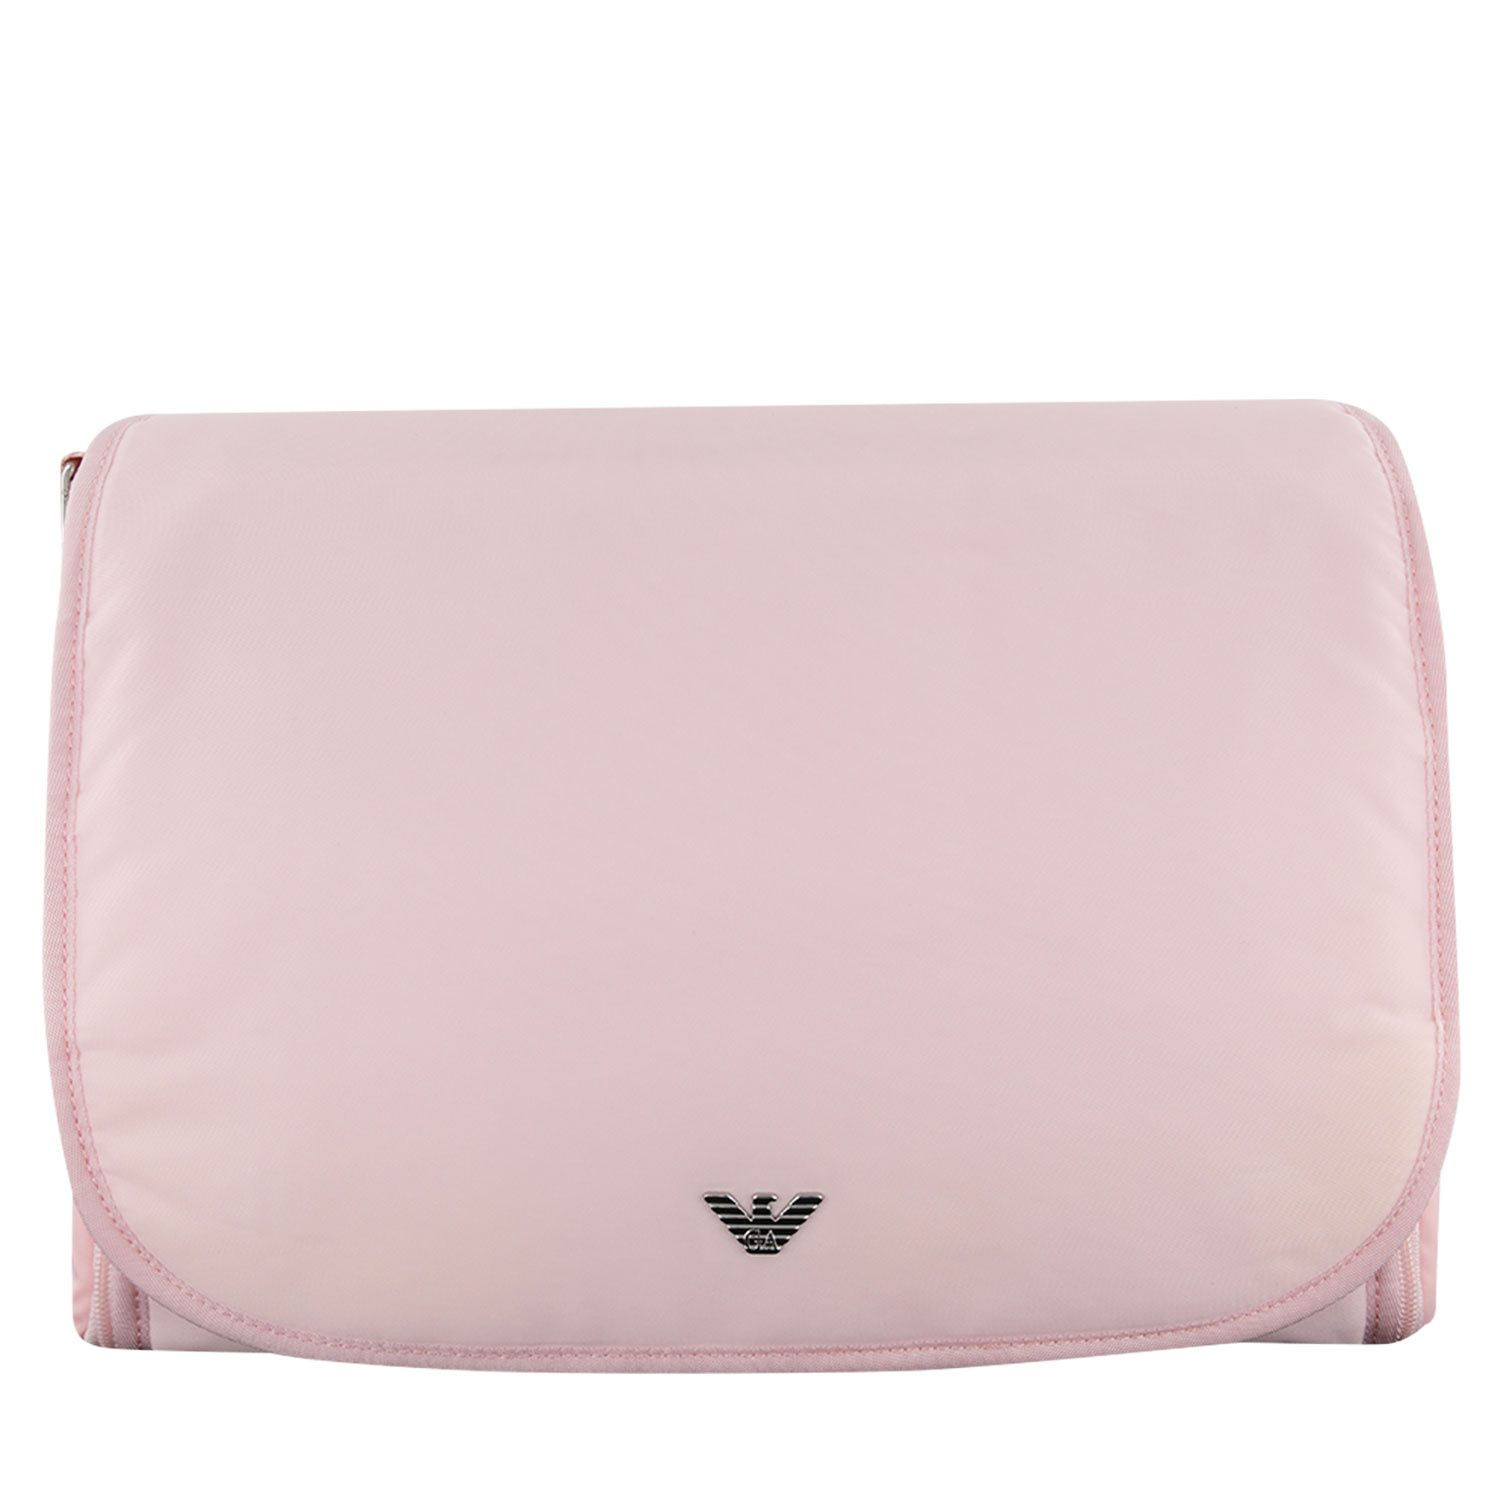 Picture of Armani 402145 diaper bags light pink